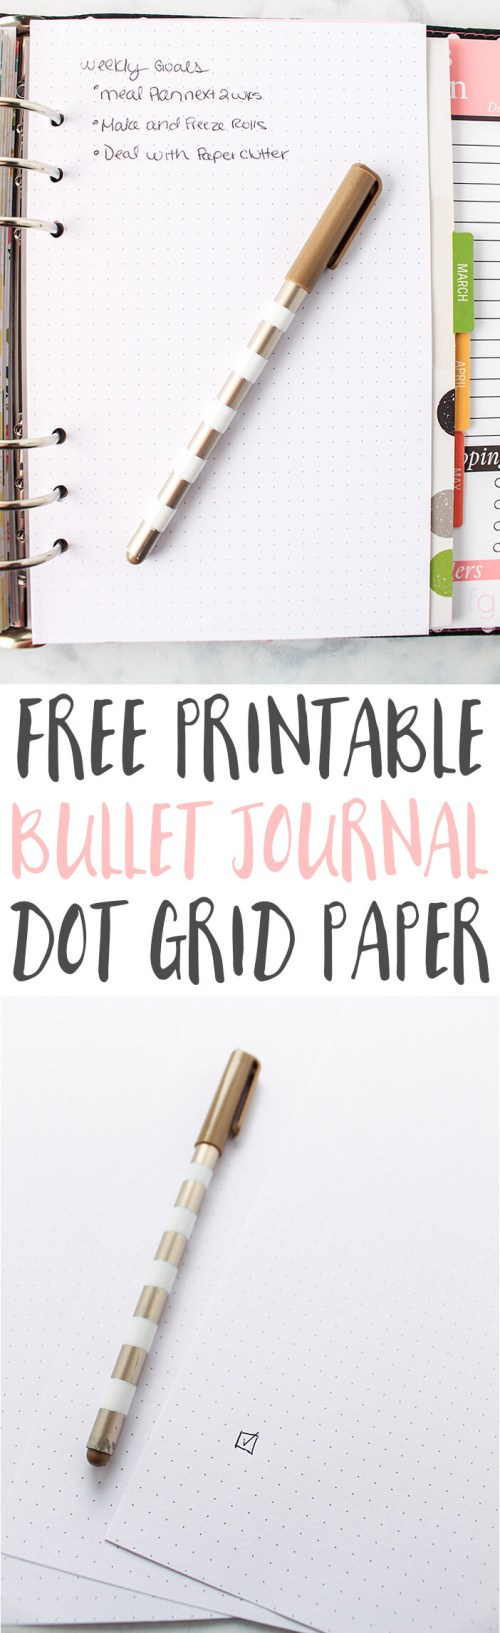 Bullet Journal Ideas | Bullet Journaling | Bullet Journal Printables | Bullet Journal Layout | Planner Ideas | Dot Grid Paper Printable